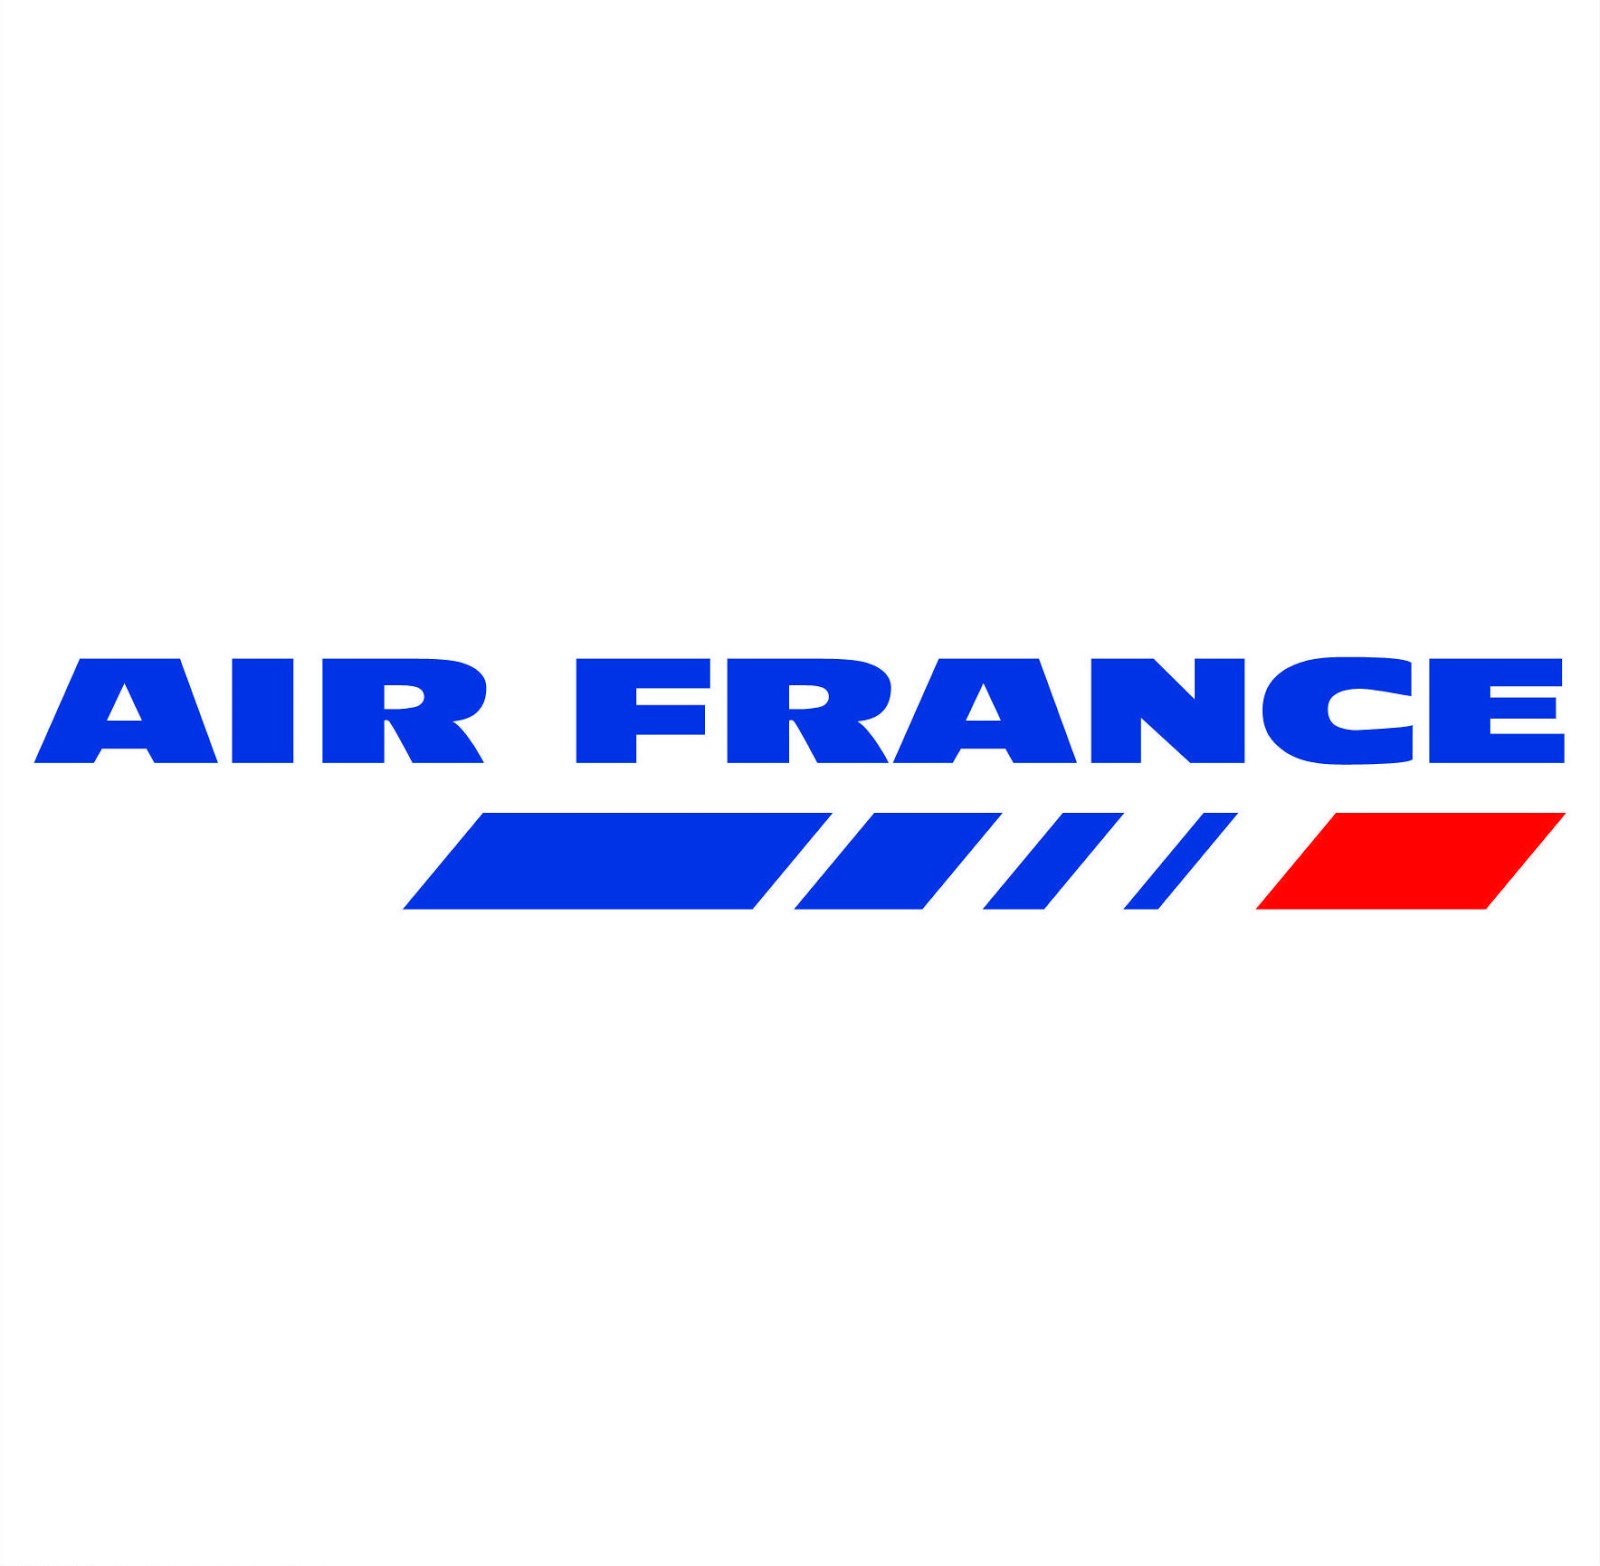 my logo pictures air france logos. Black Bedroom Furniture Sets. Home Design Ideas